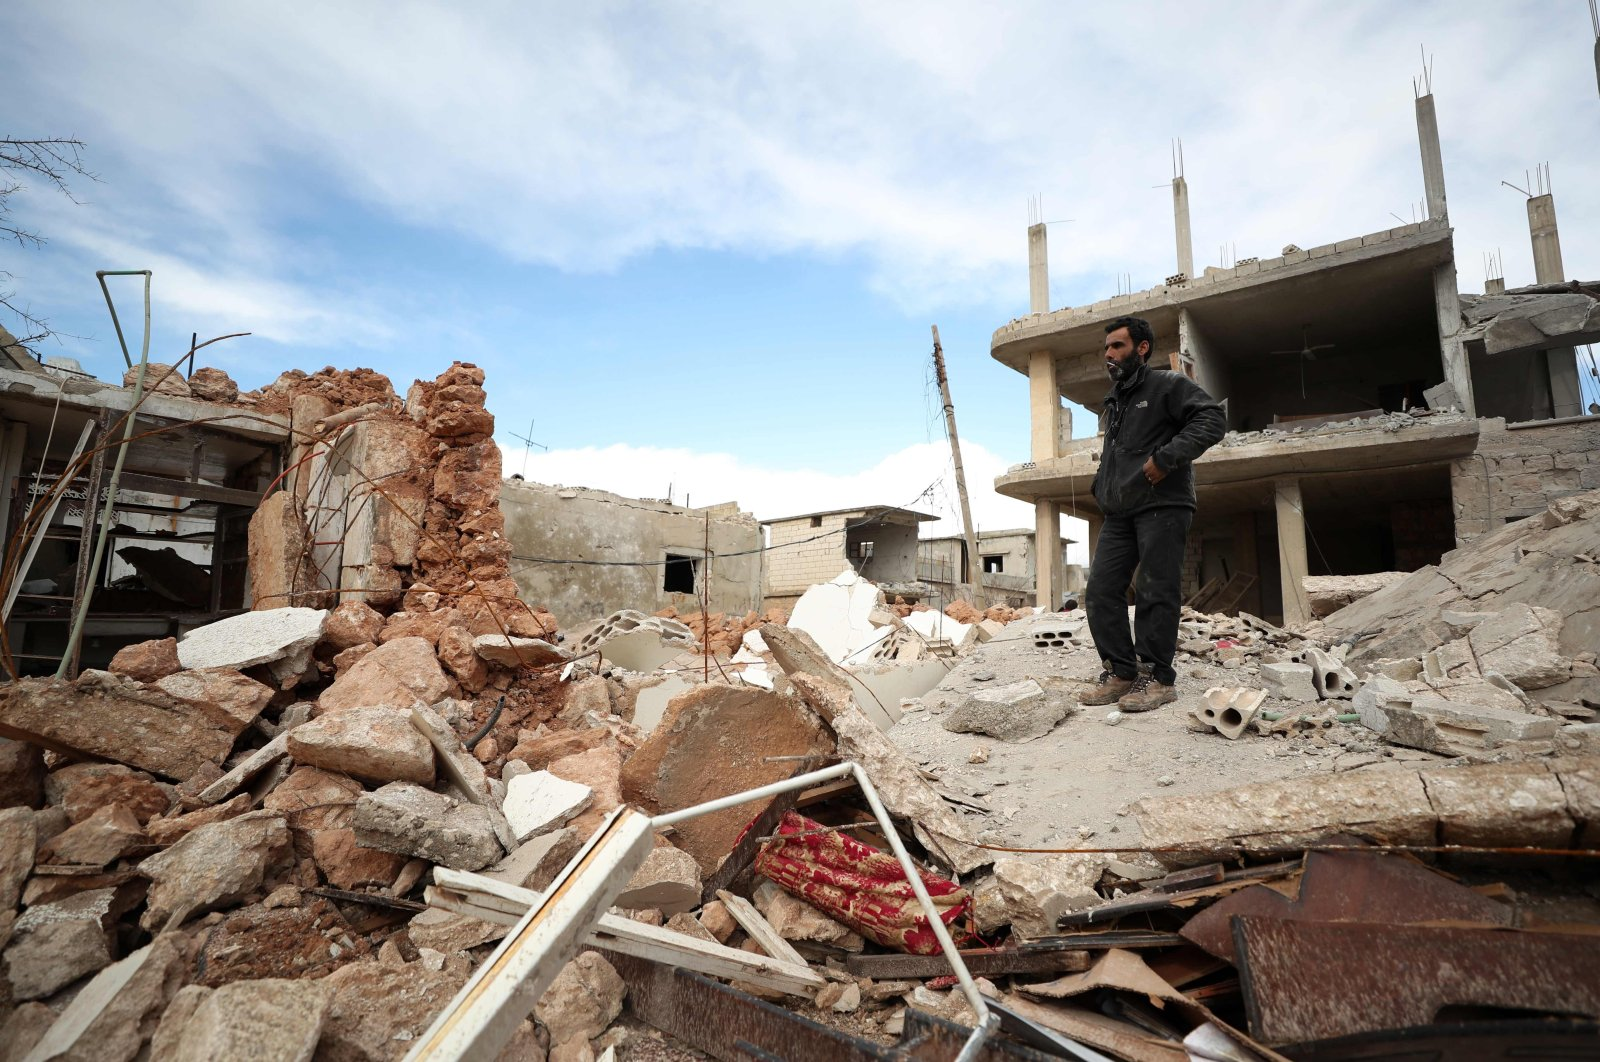 A man stands amid the rubble of a destroyed building in the town of Saraqib, in the northwestern province of Idlib, Syria, Jan. 31, 2020. (AFP Photo)